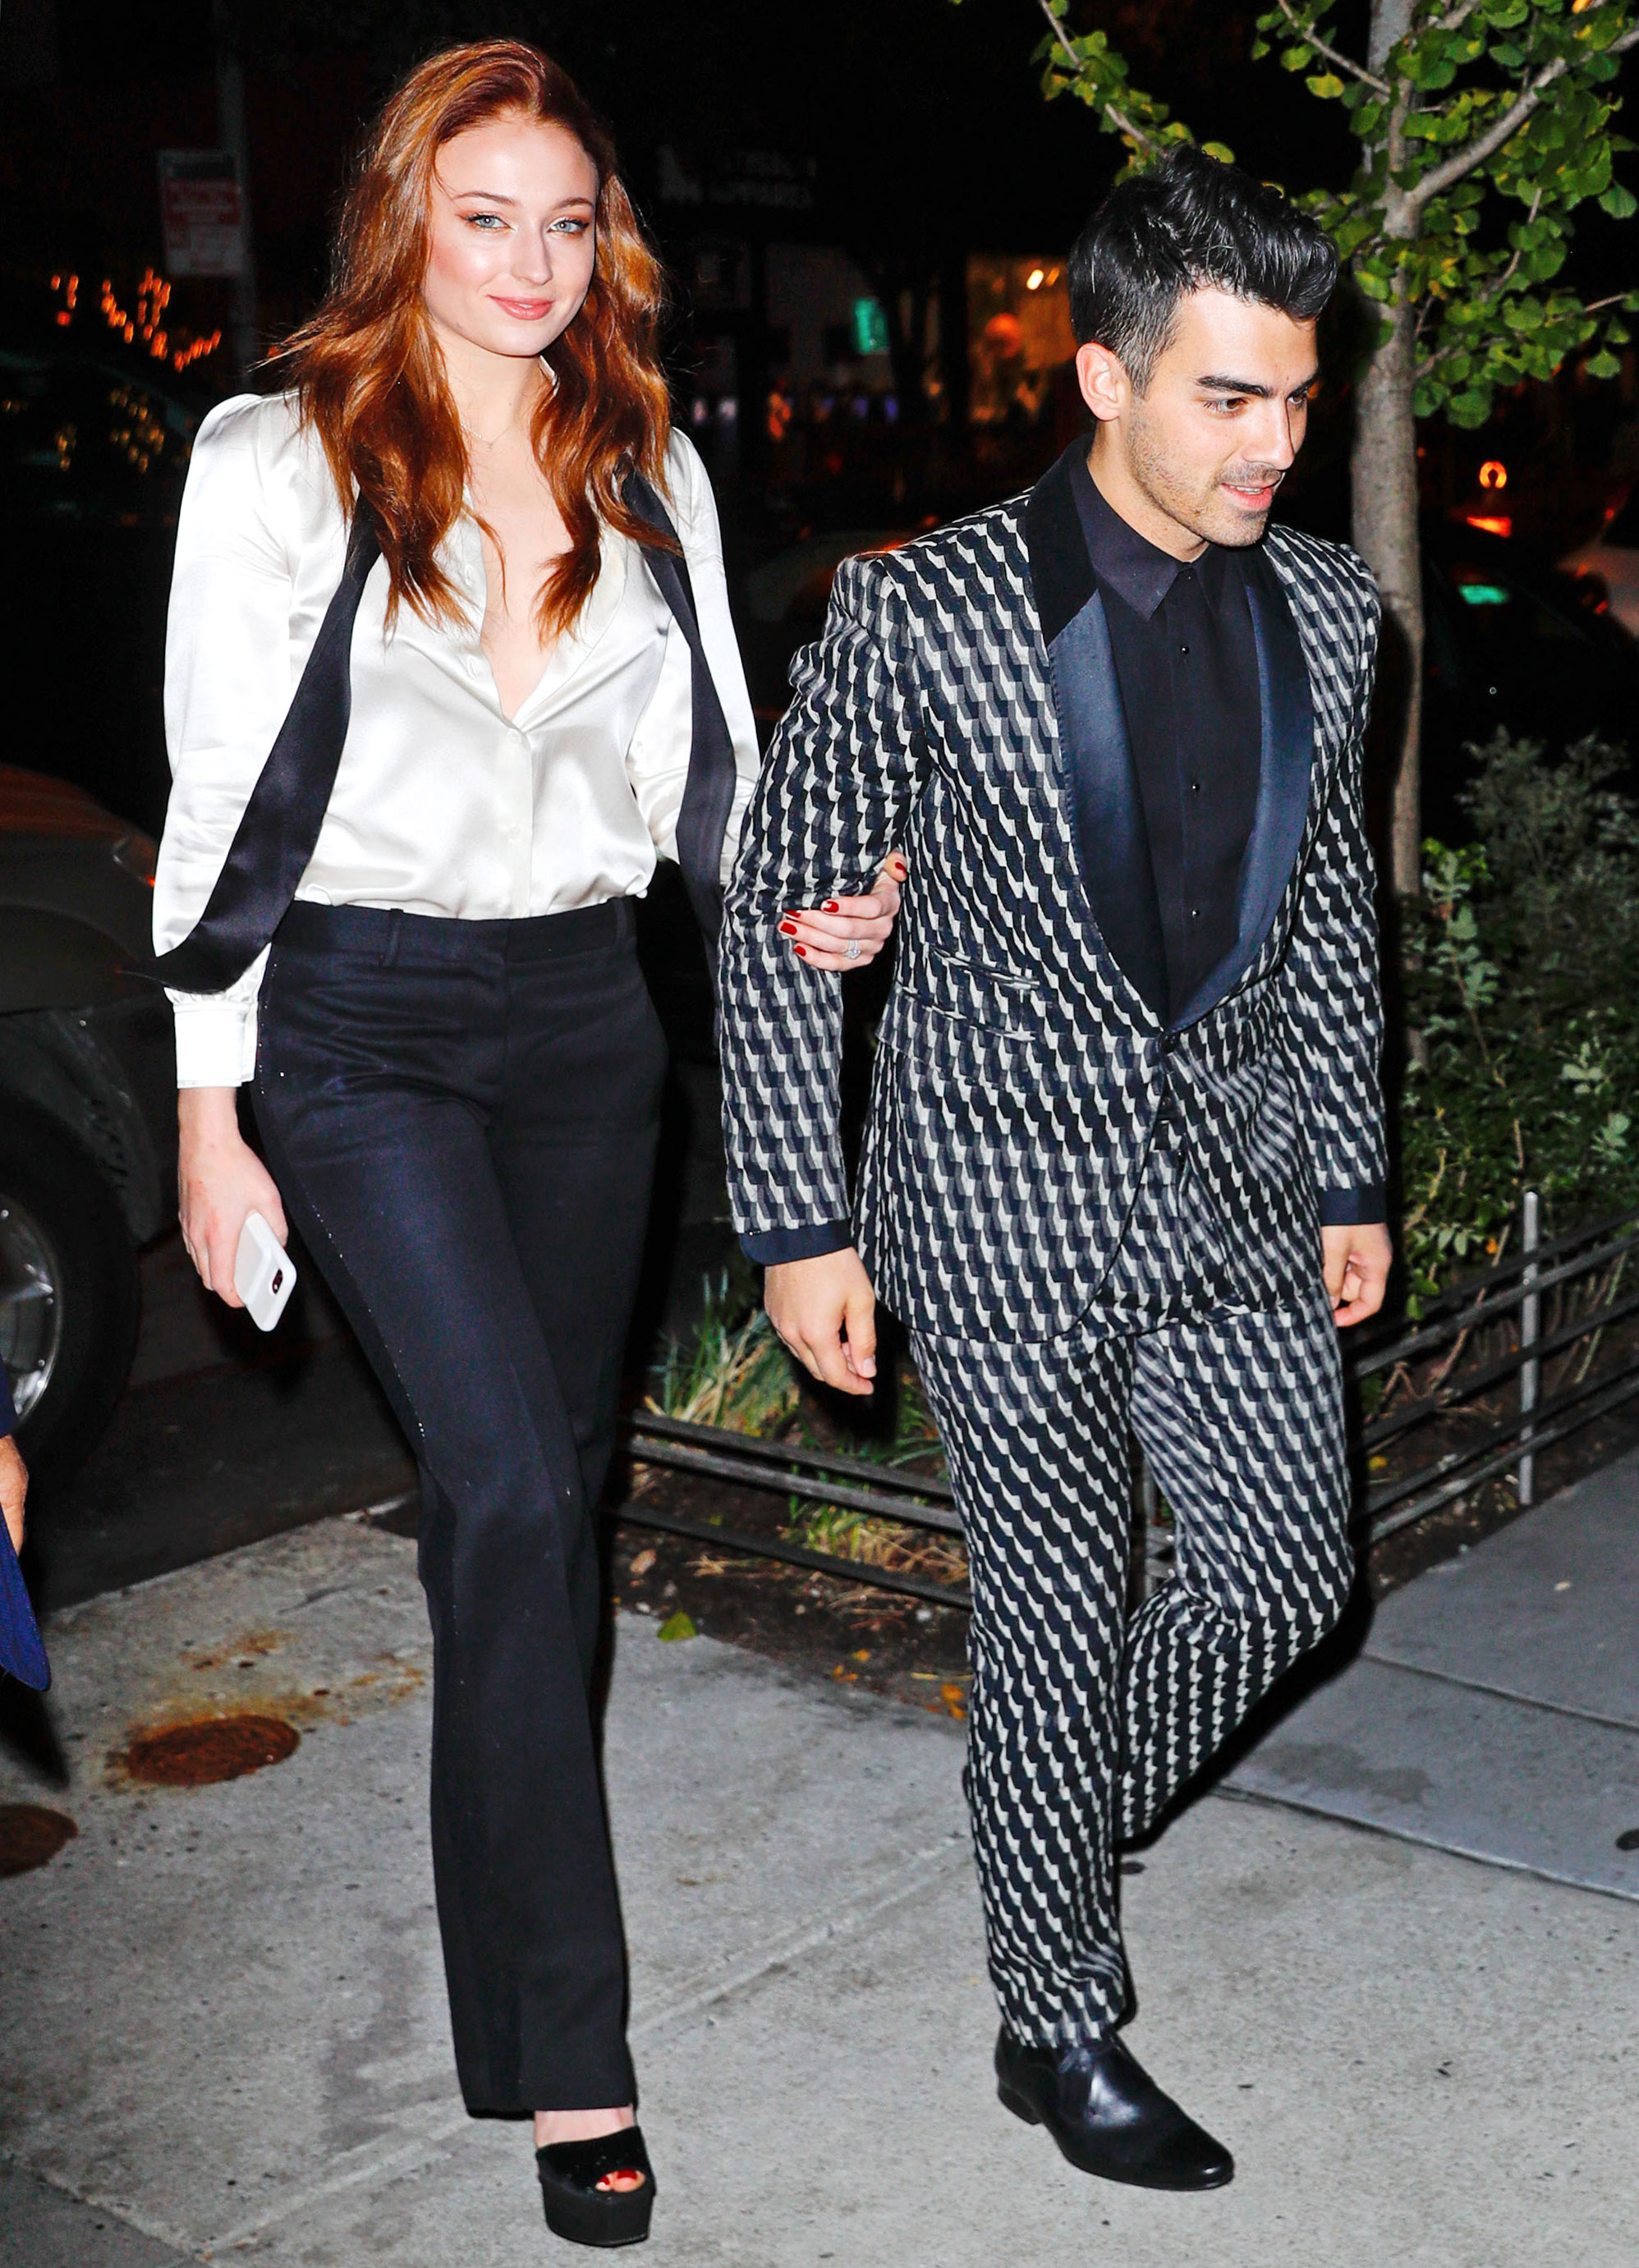 Joe Jonas Sophie Turner S Engagement Party Included Photo Booth Fun For Their Celebrity Guests Nepal24hours Com Integration Through Media